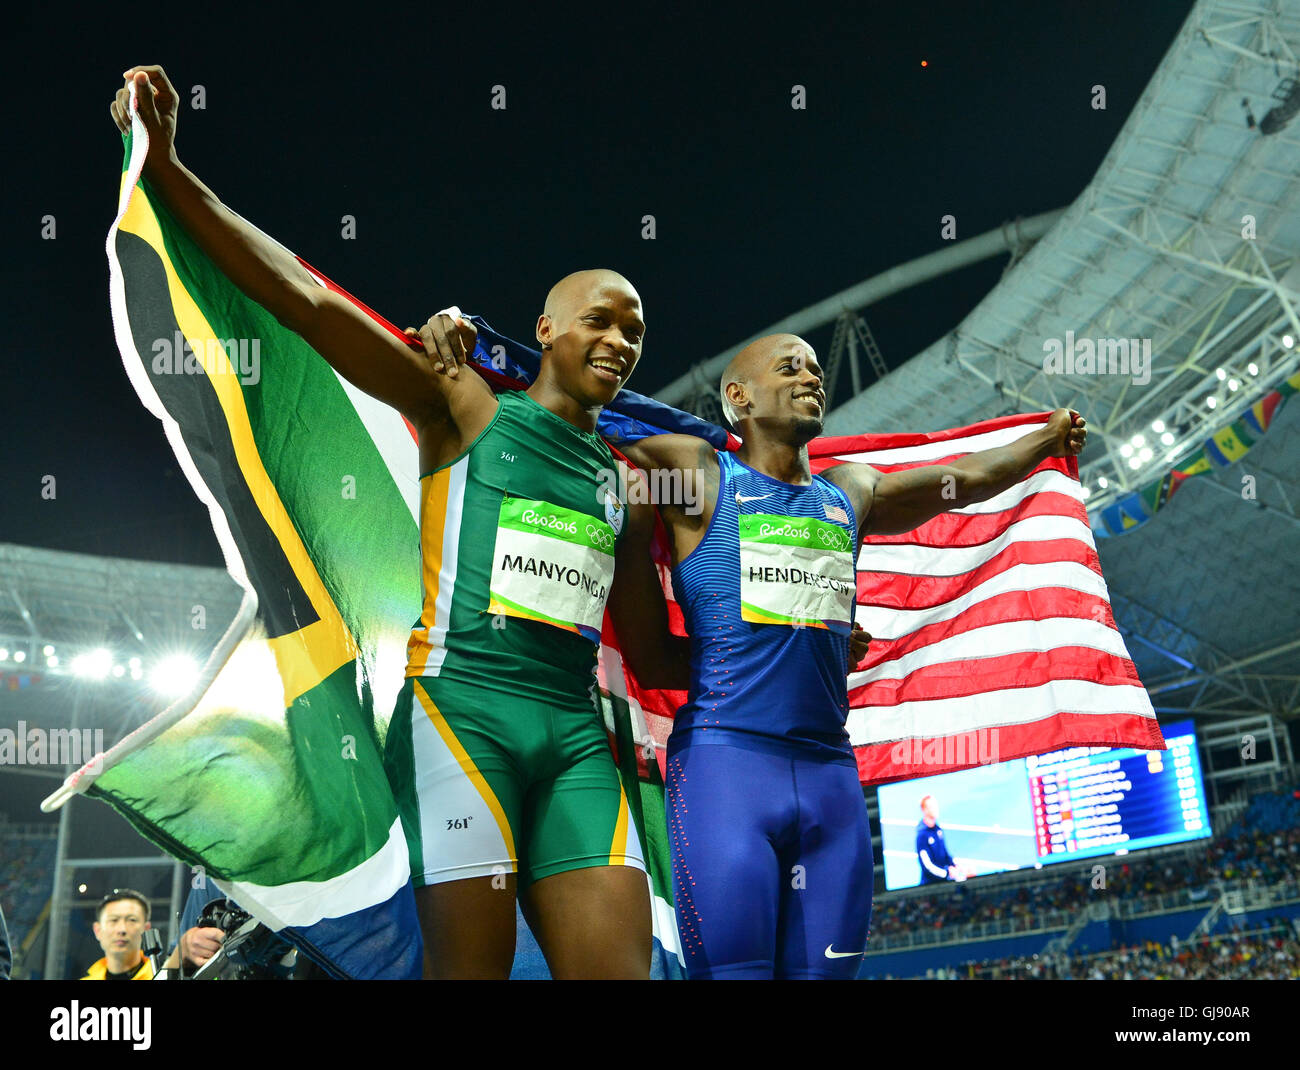 RIO DE JANEIRO, BRAZIL - AUGUST 13: Luvo Manyonga of South Africa and Jeff Henderson of the USA hold their national - Stock Image